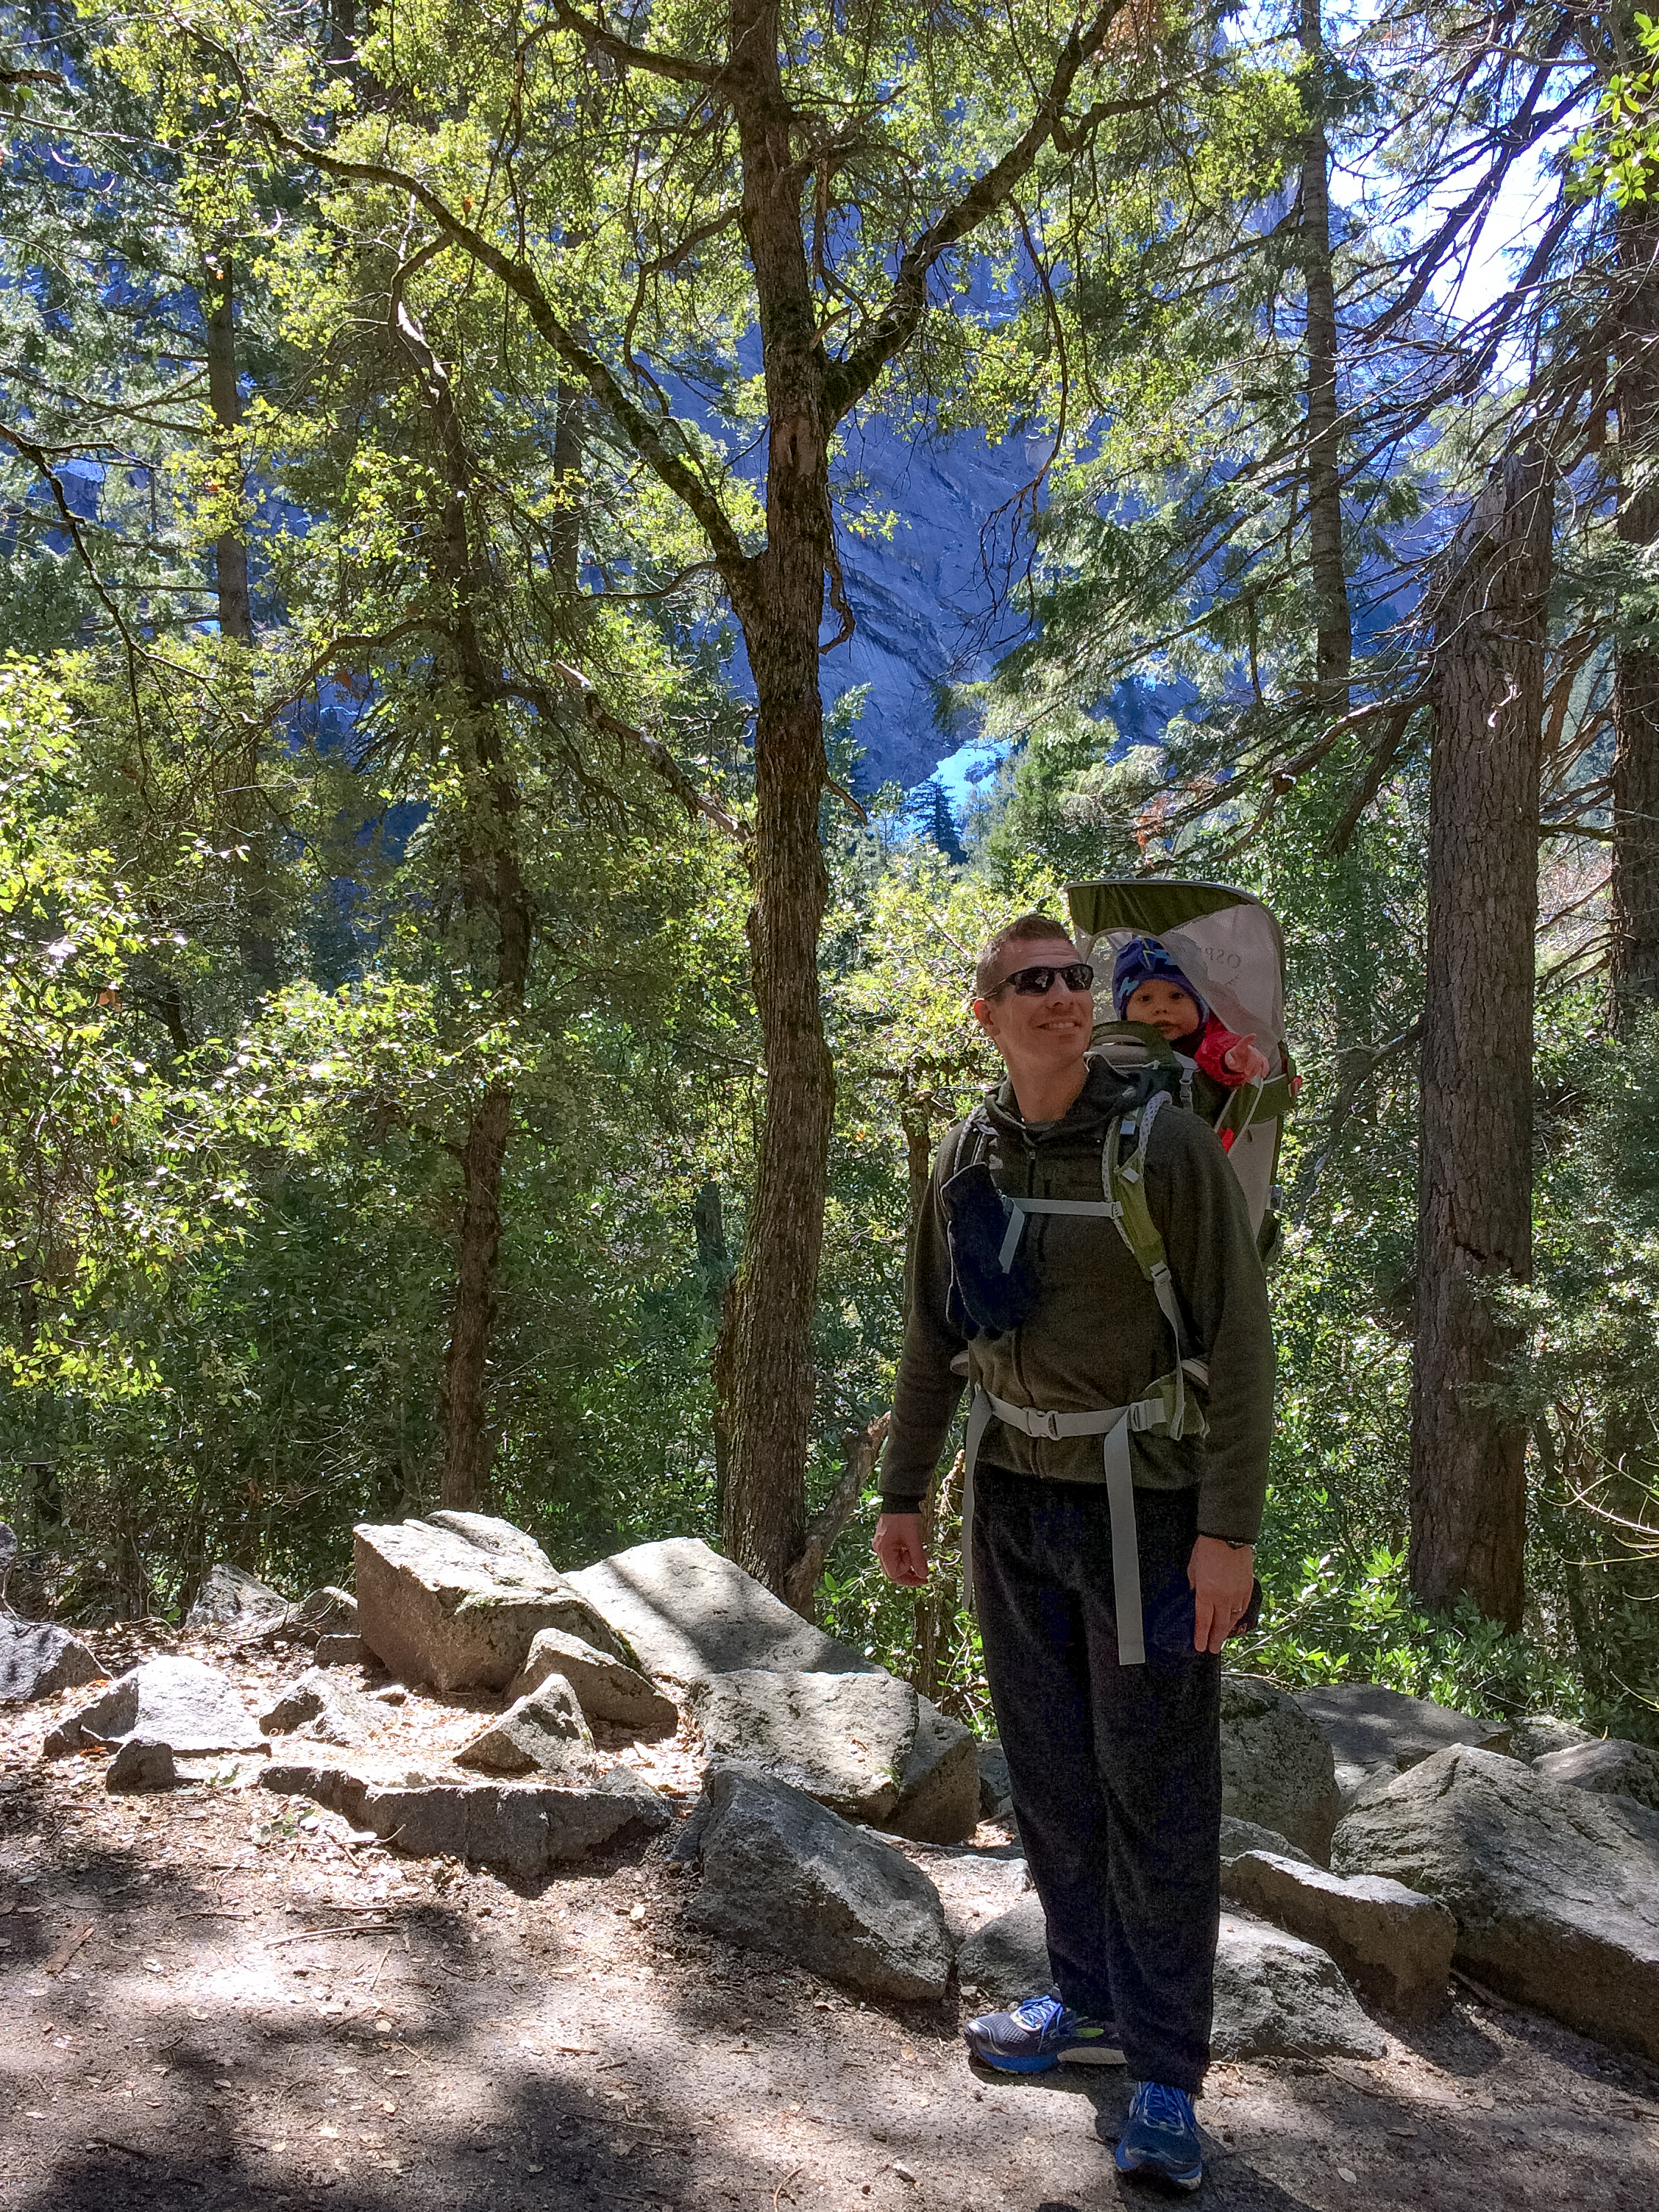 Conquering Big Hikes with Baby: My Pick for the Best Baby Hiking